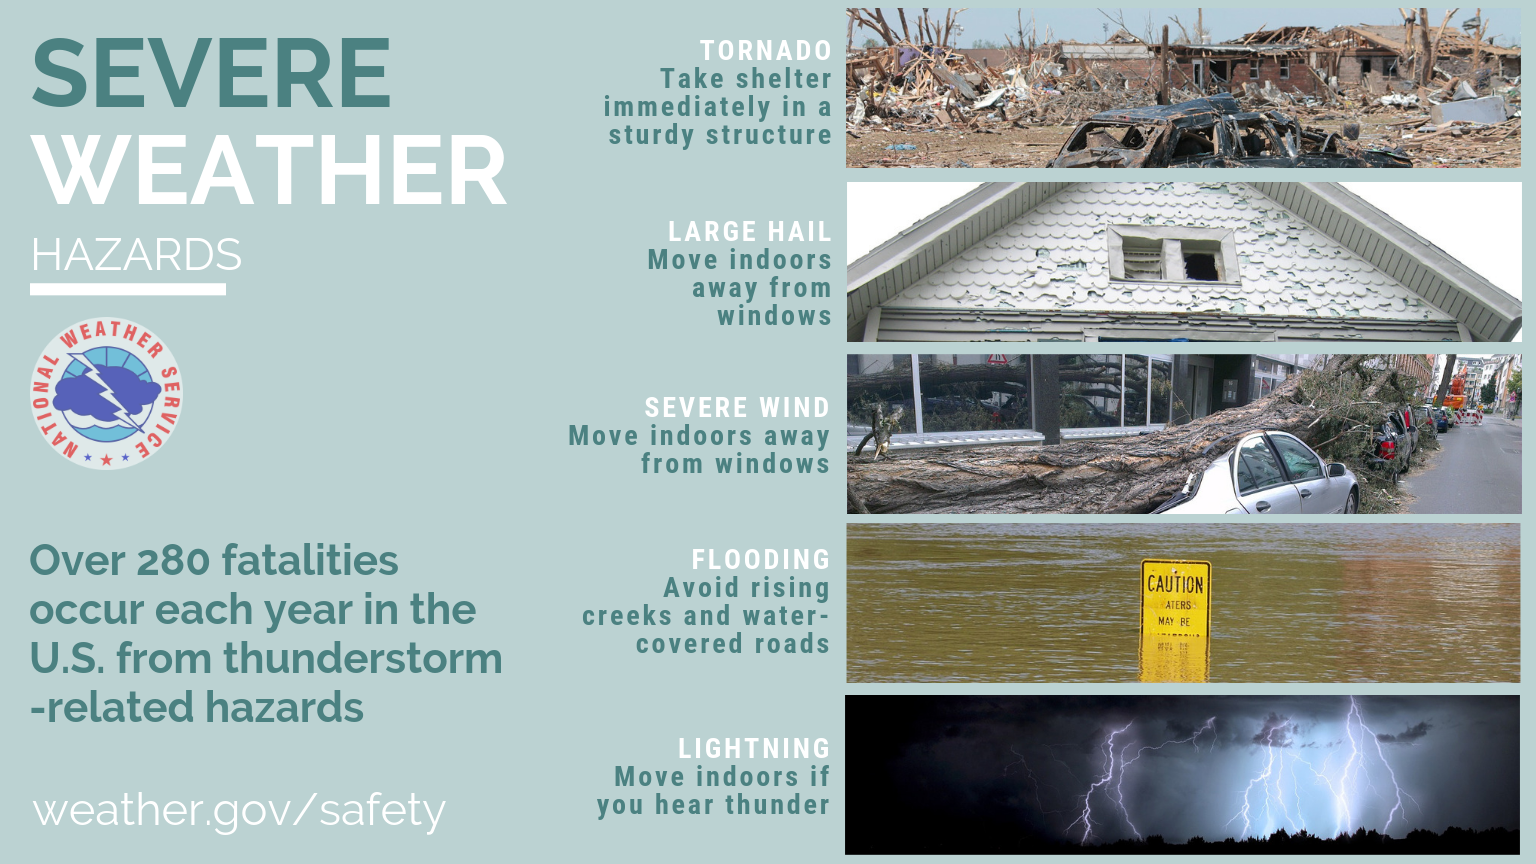 A info graphic of severe weather hazards including tornado, hail, wind, flooding and lightening.